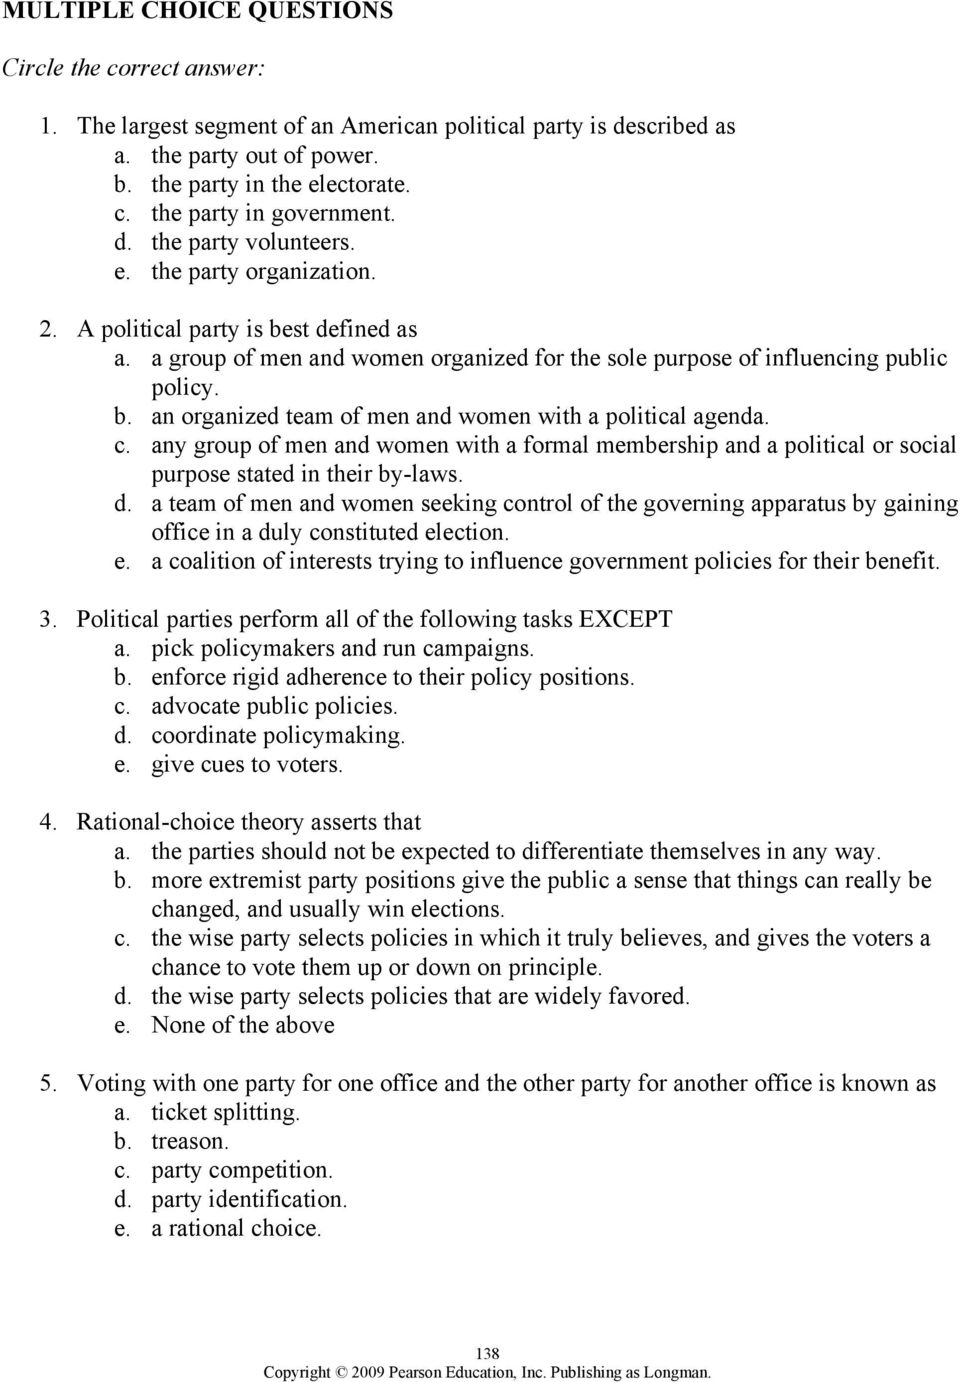 worksheet The Populist Movement The Value Of Third Parties Worksheet Answers chapter 8 political parties outline pdf c any group of men and women with a formal membership or